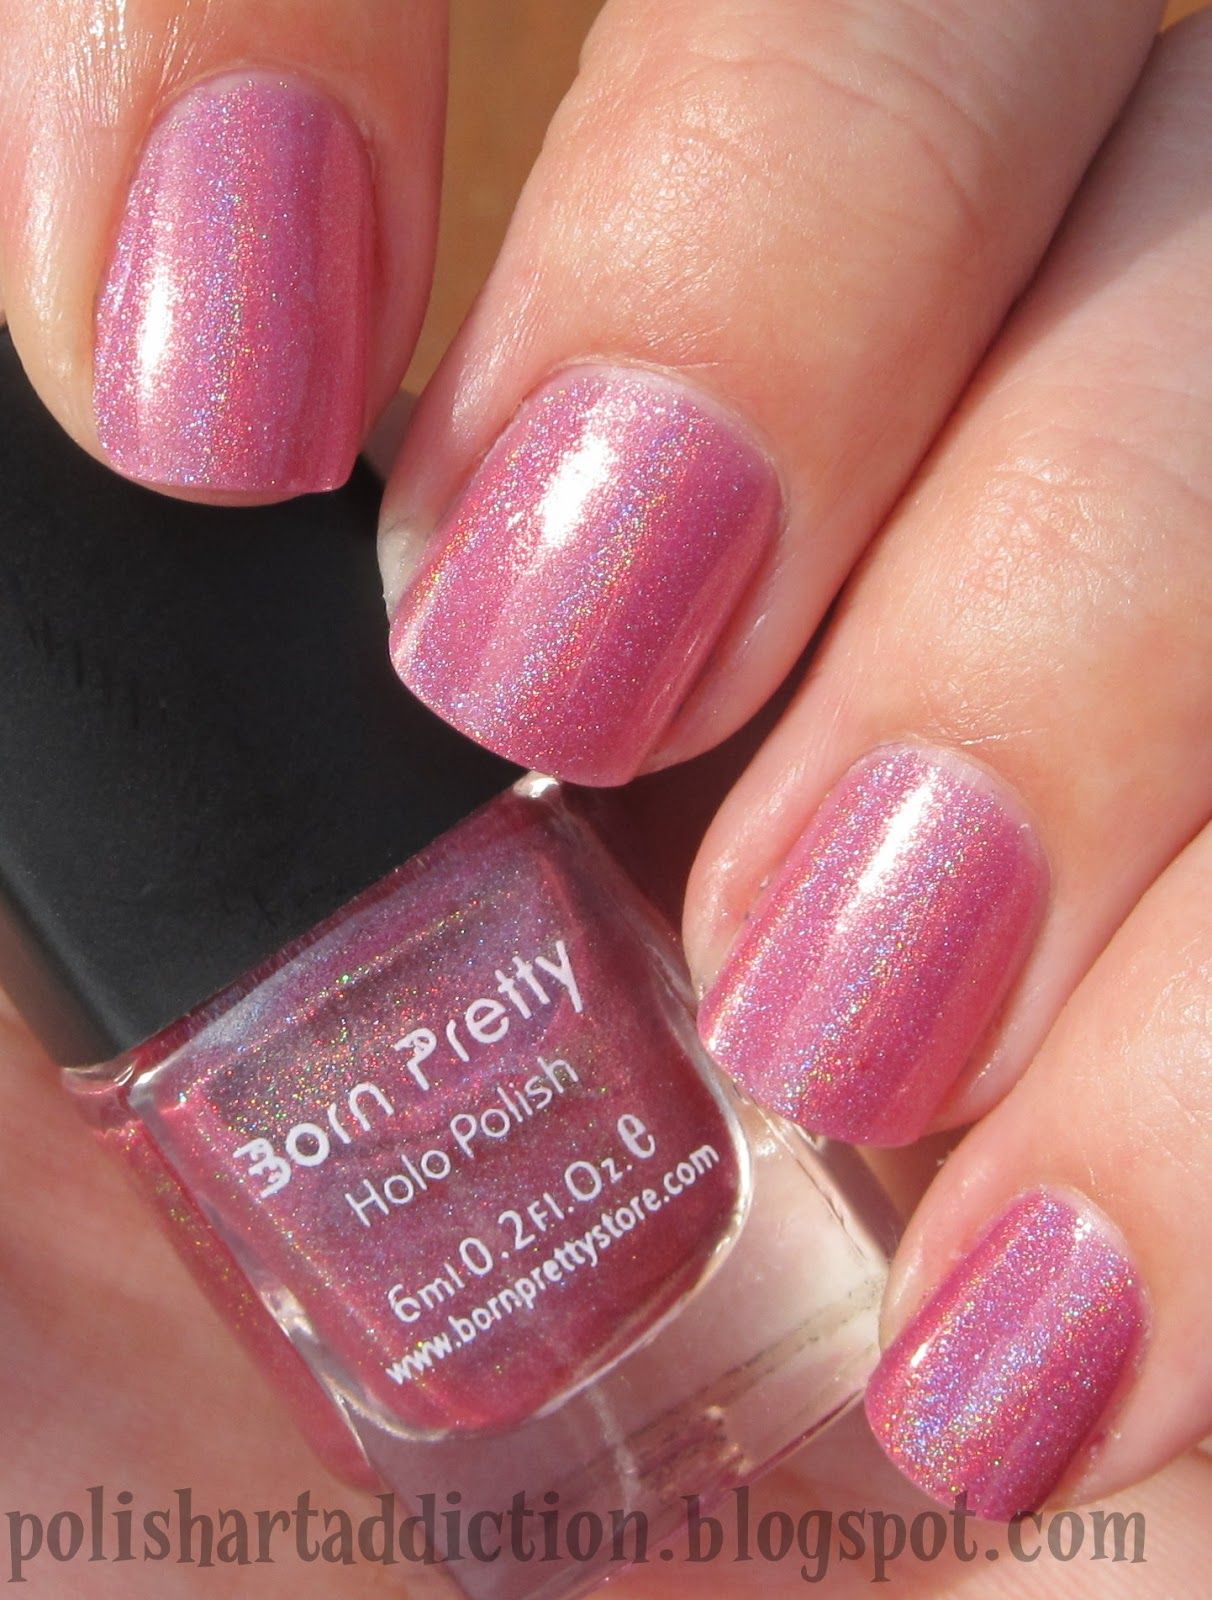 Born Pretty Store Holographic Polish - #3 Pink, #8 Blue, & #11 Purple